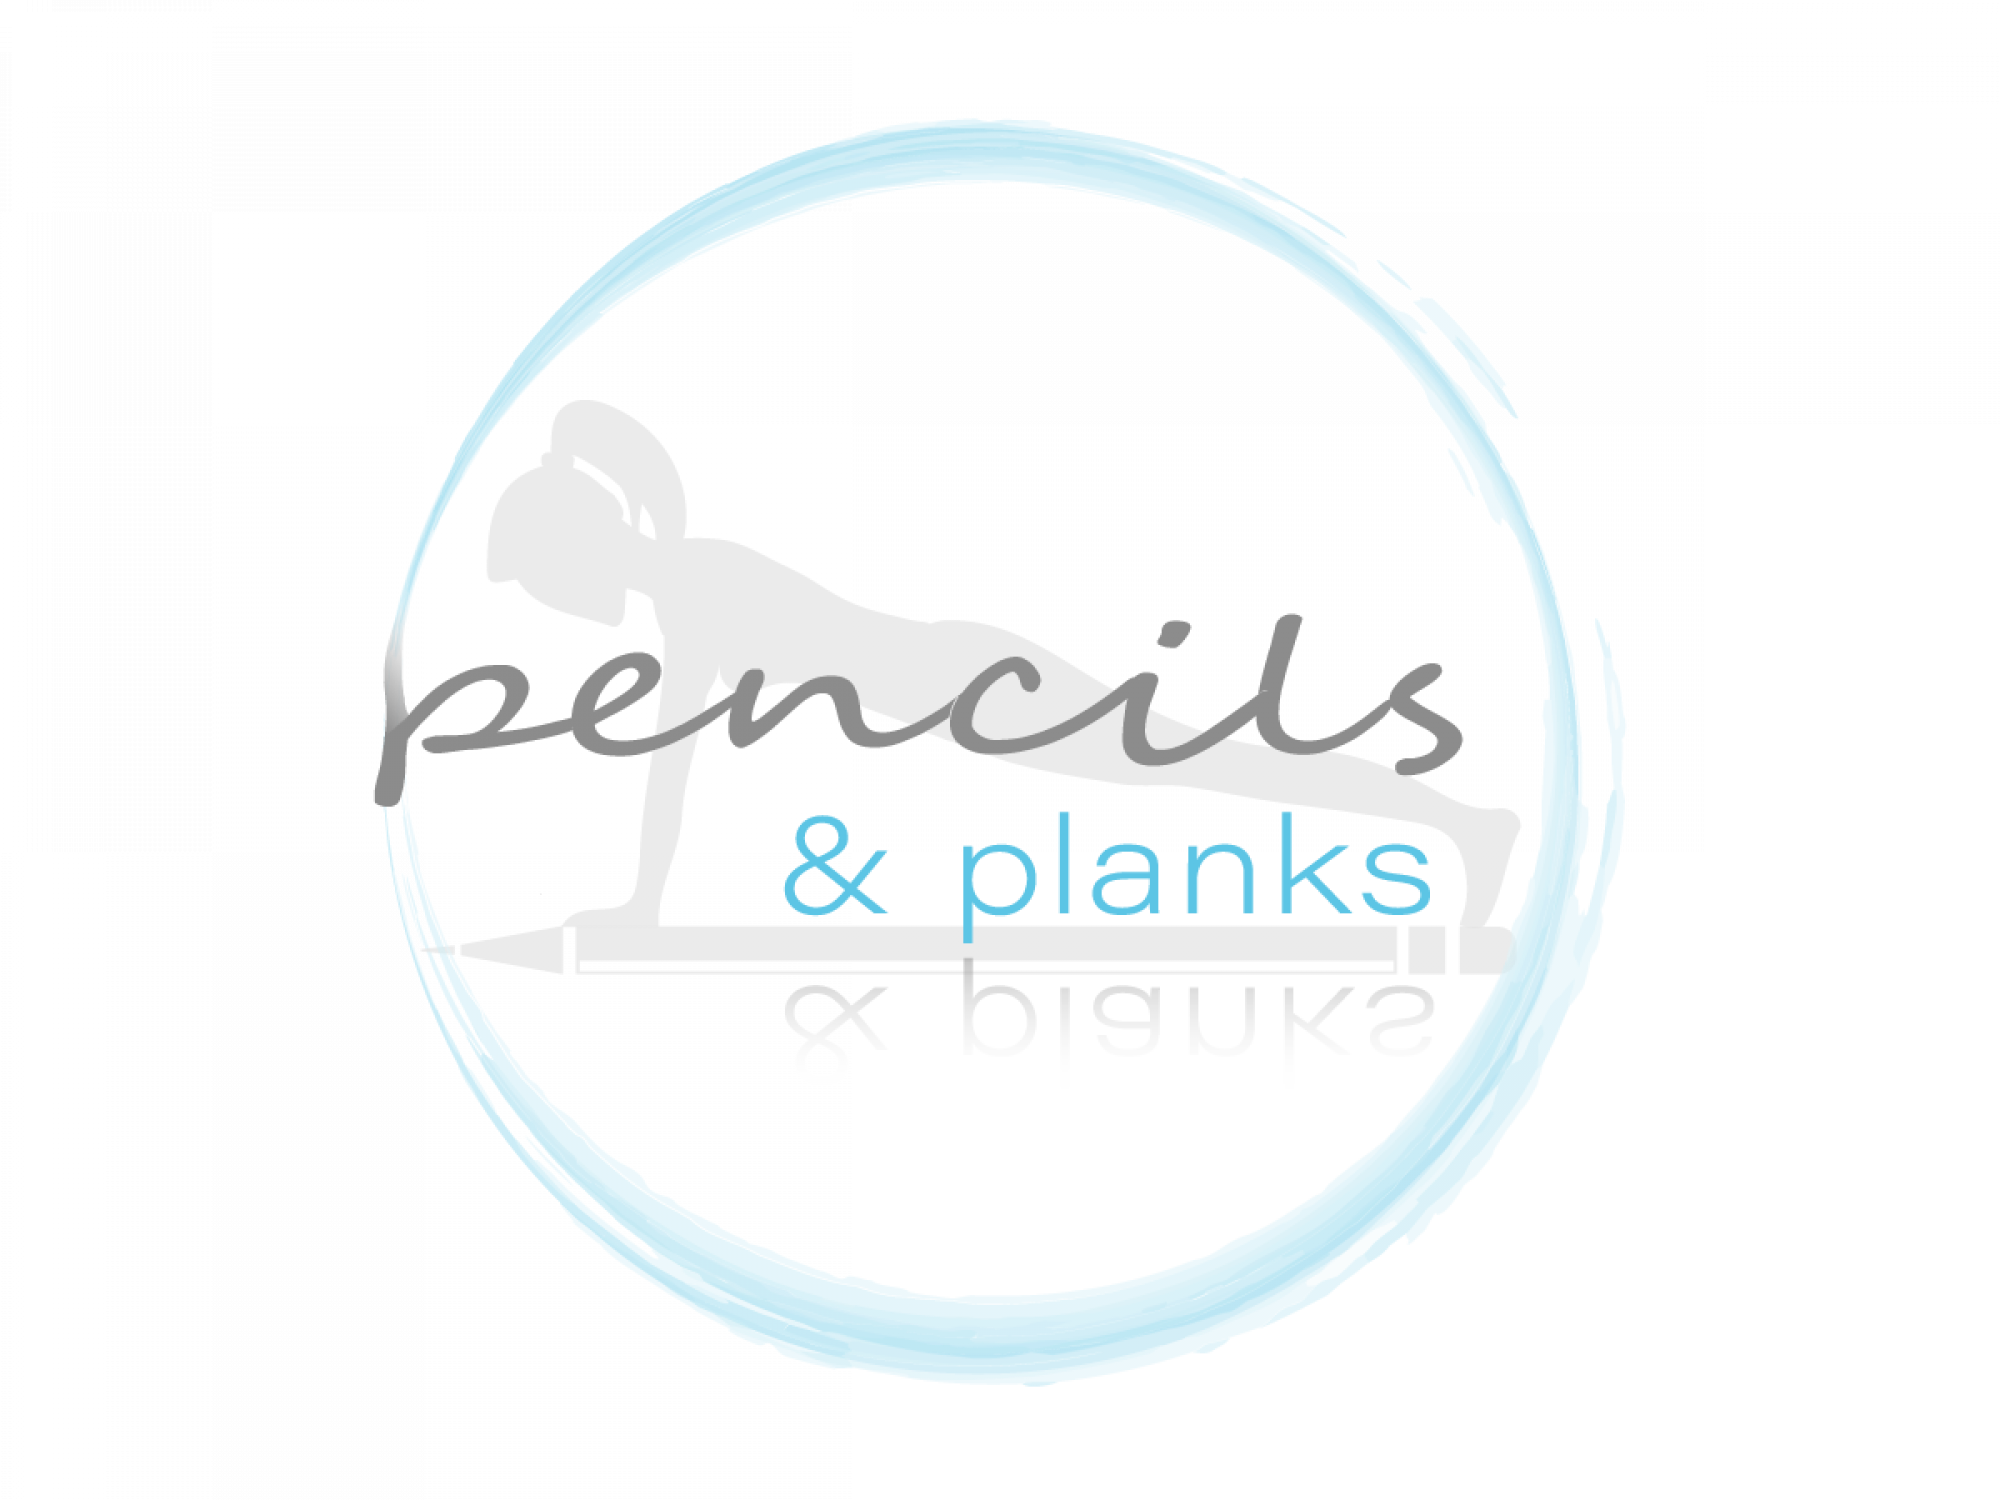 Pencils & Planks Logo